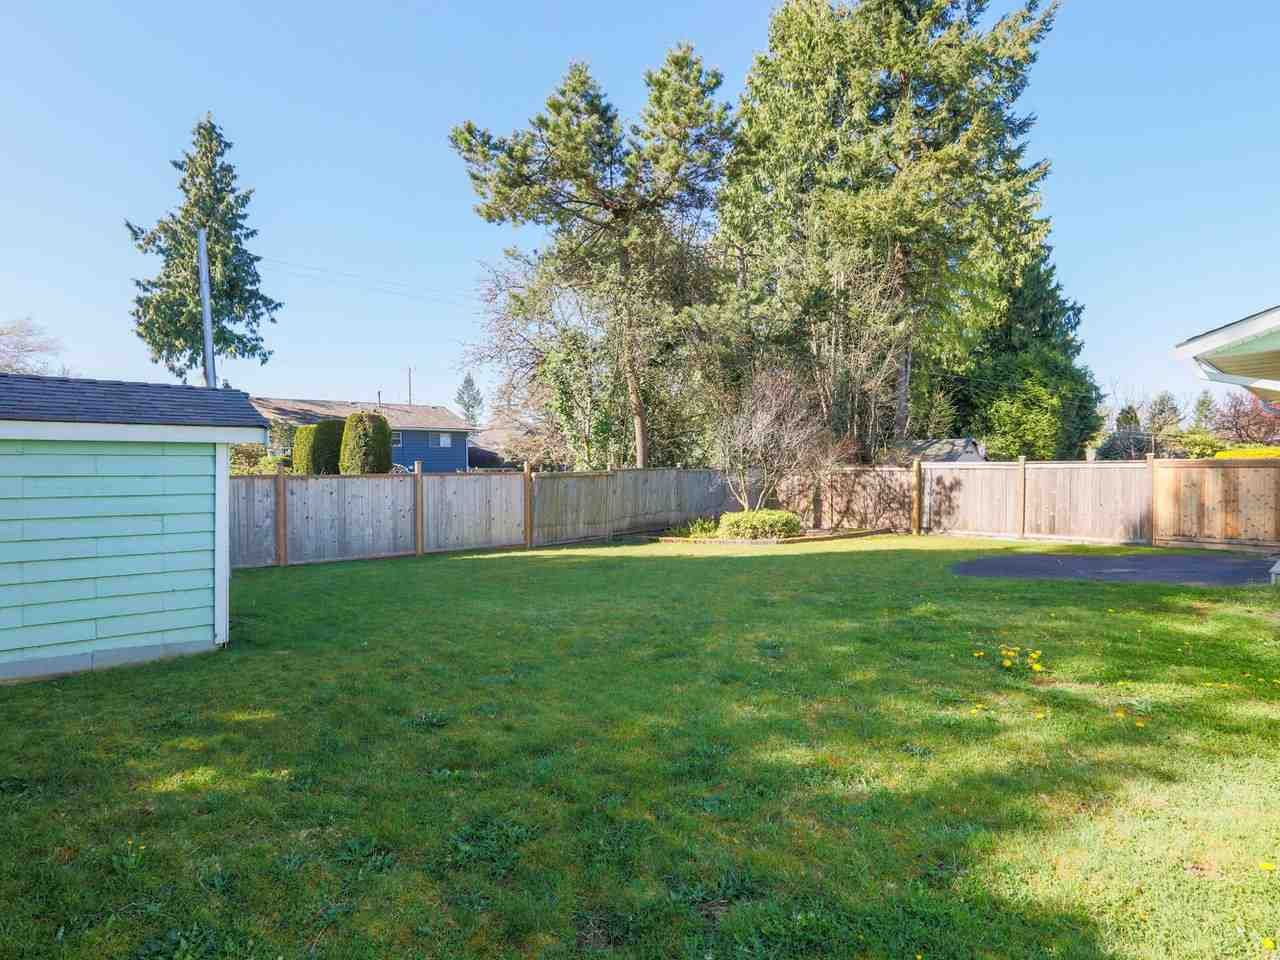 Photo 22: Photos: 1422 GROVER Avenue in Coquitlam: Central Coquitlam House for sale : MLS®# R2568207